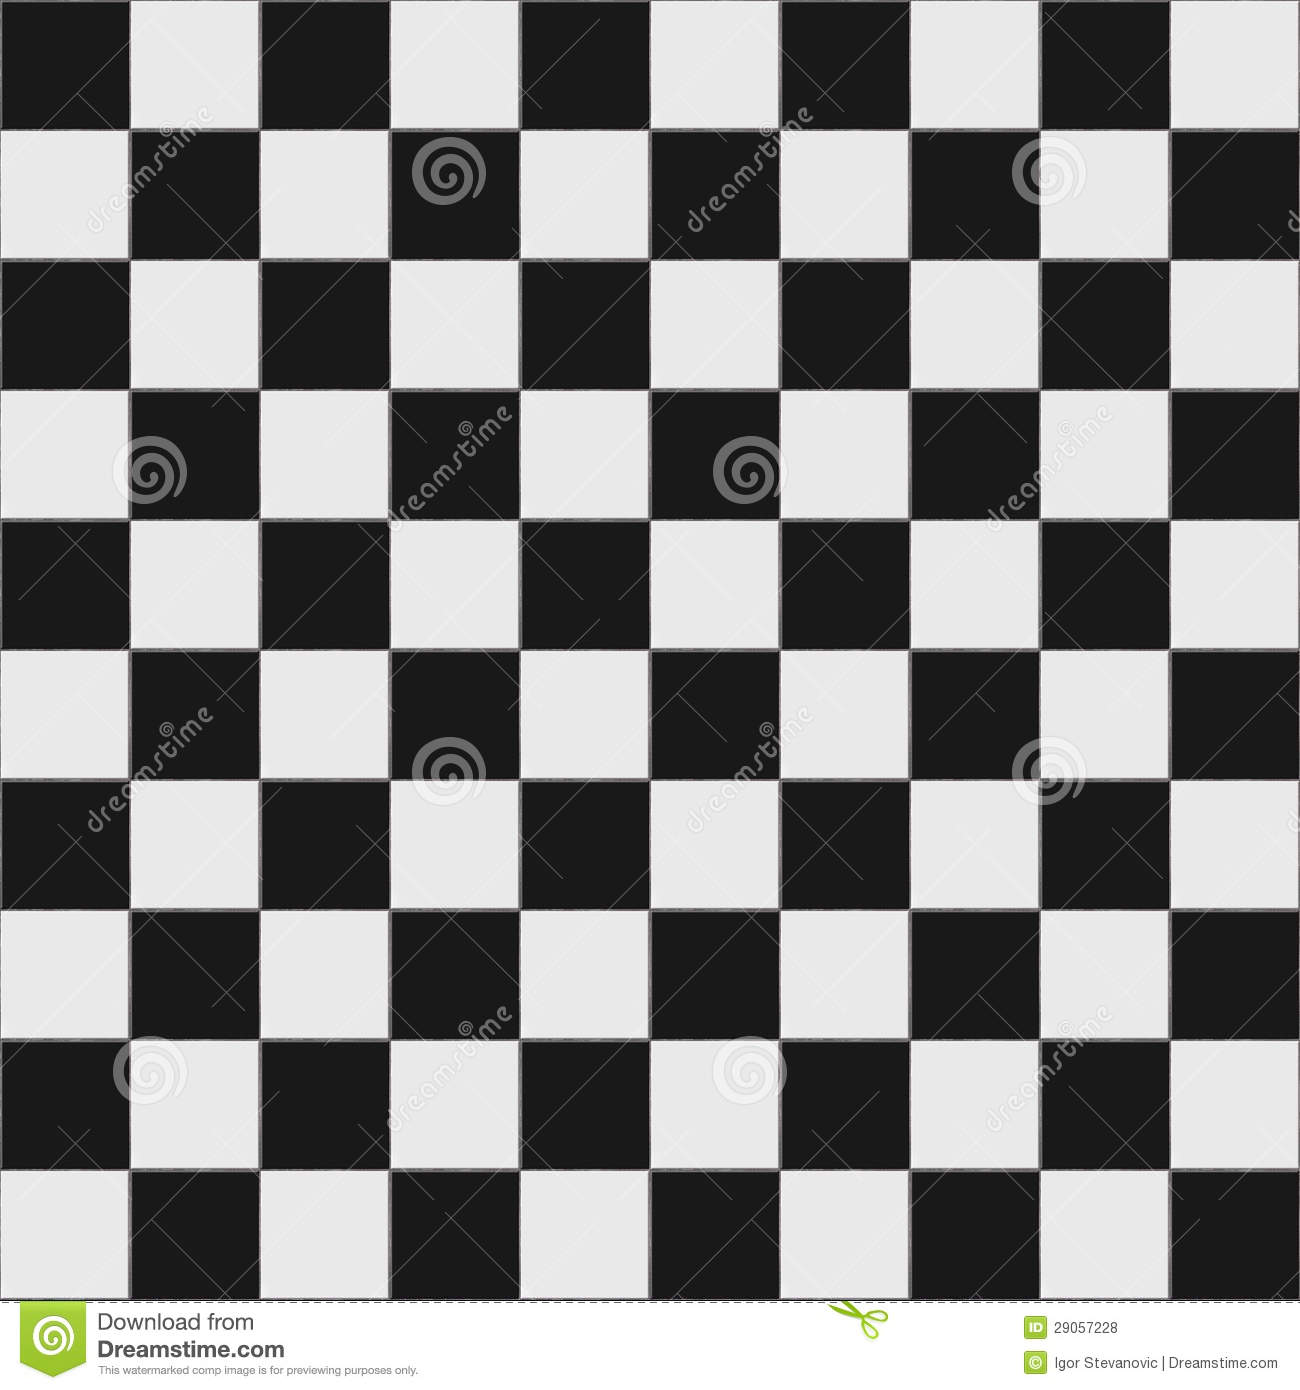 Seamless black and white checkered texture stock images image - Black Checkered Floor Pattern